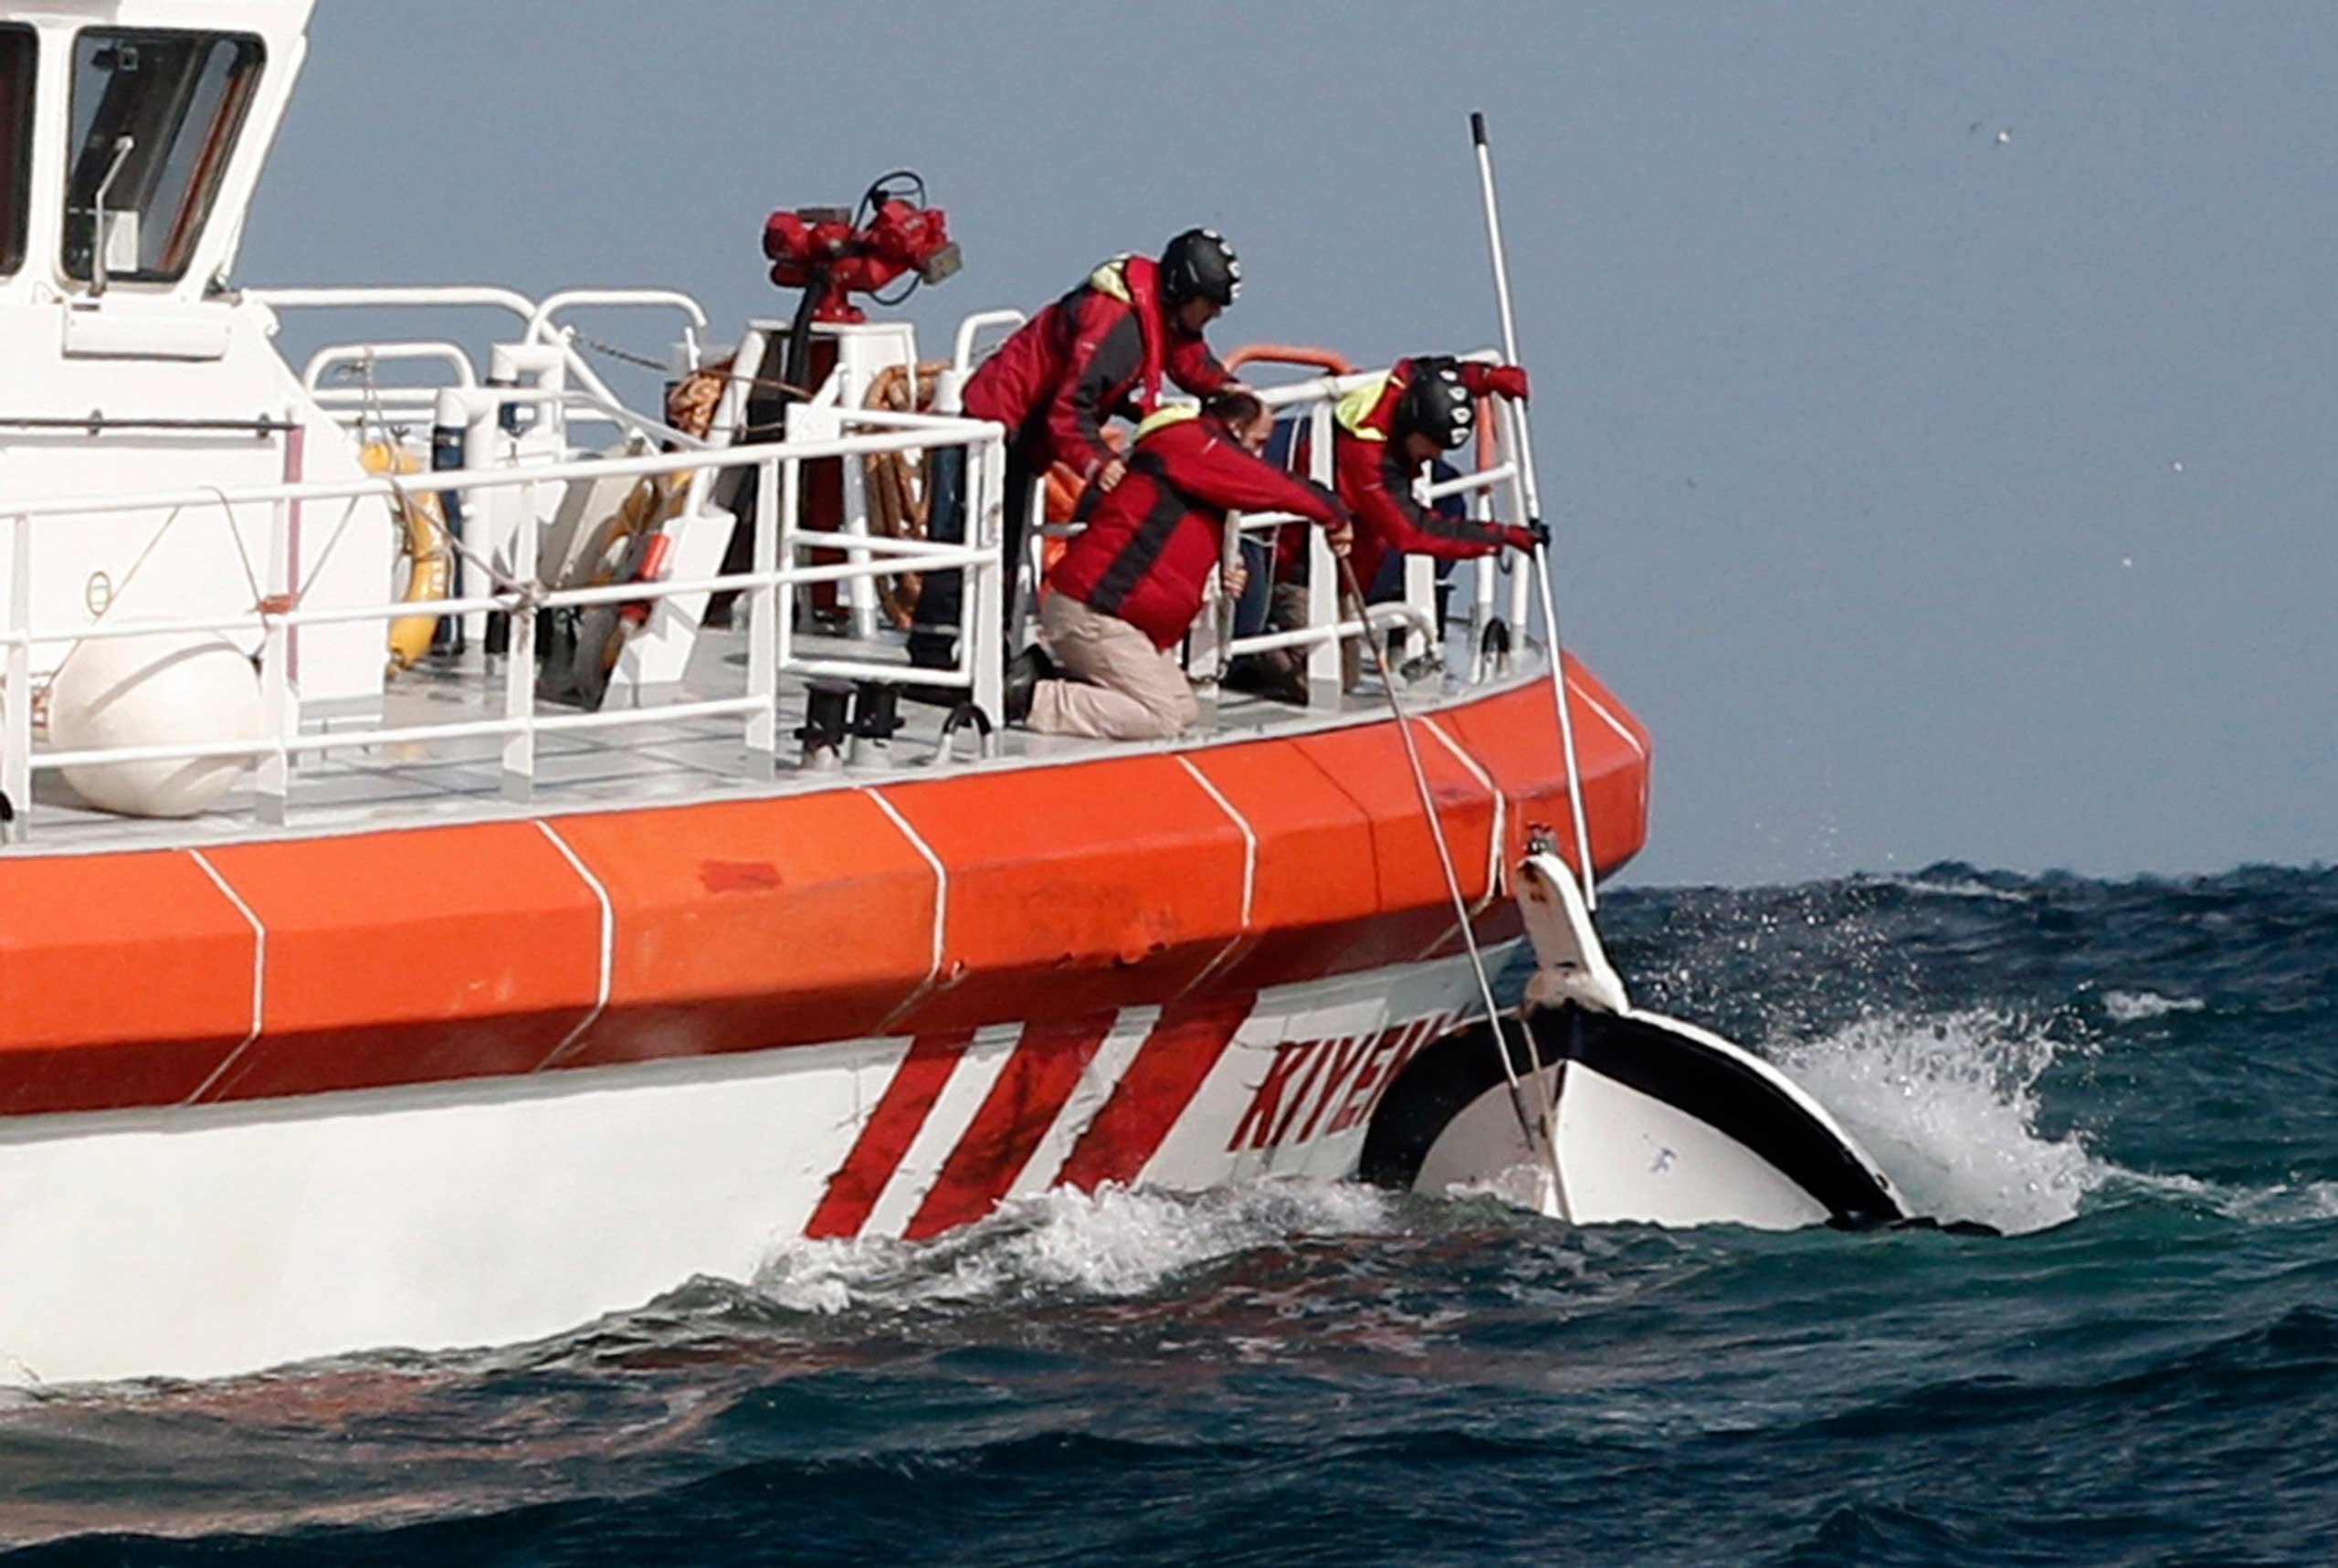 Rescuers retrieve a boat that sank, killing 24 migrants, off the Black Sea village of Garipce near Istanbul on Nov. 3, 2014.